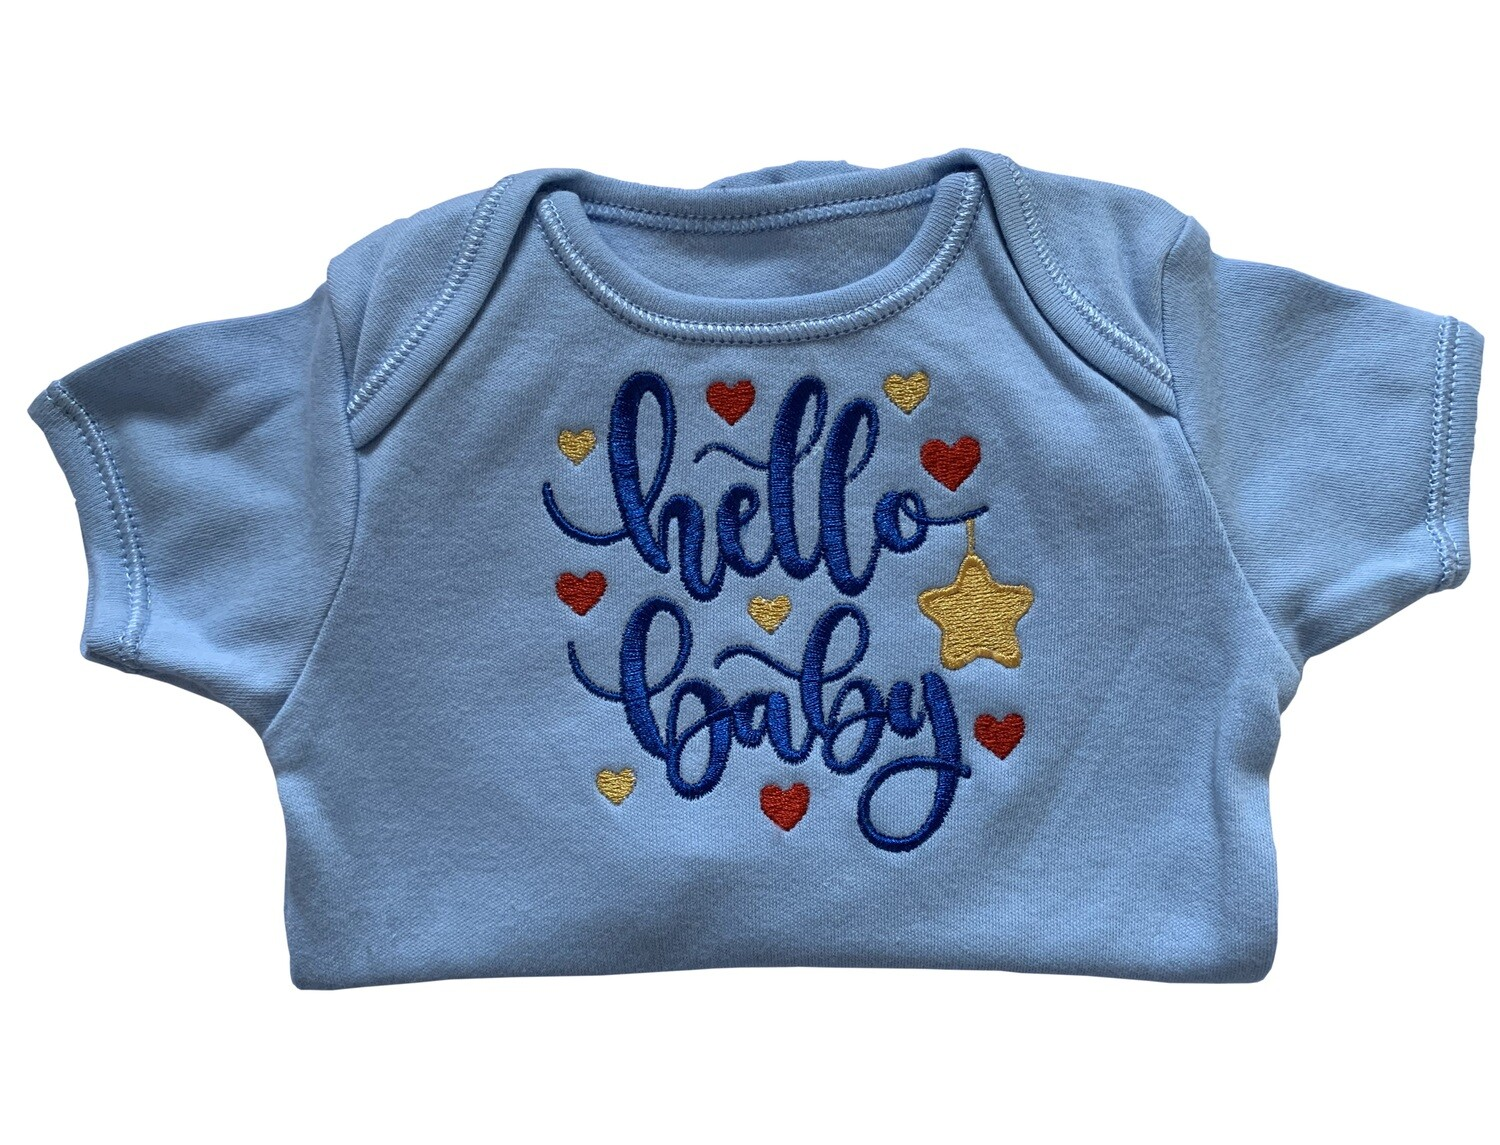 Hello Baby new born & premie baby boy onesie romper vest gifts UK personalised